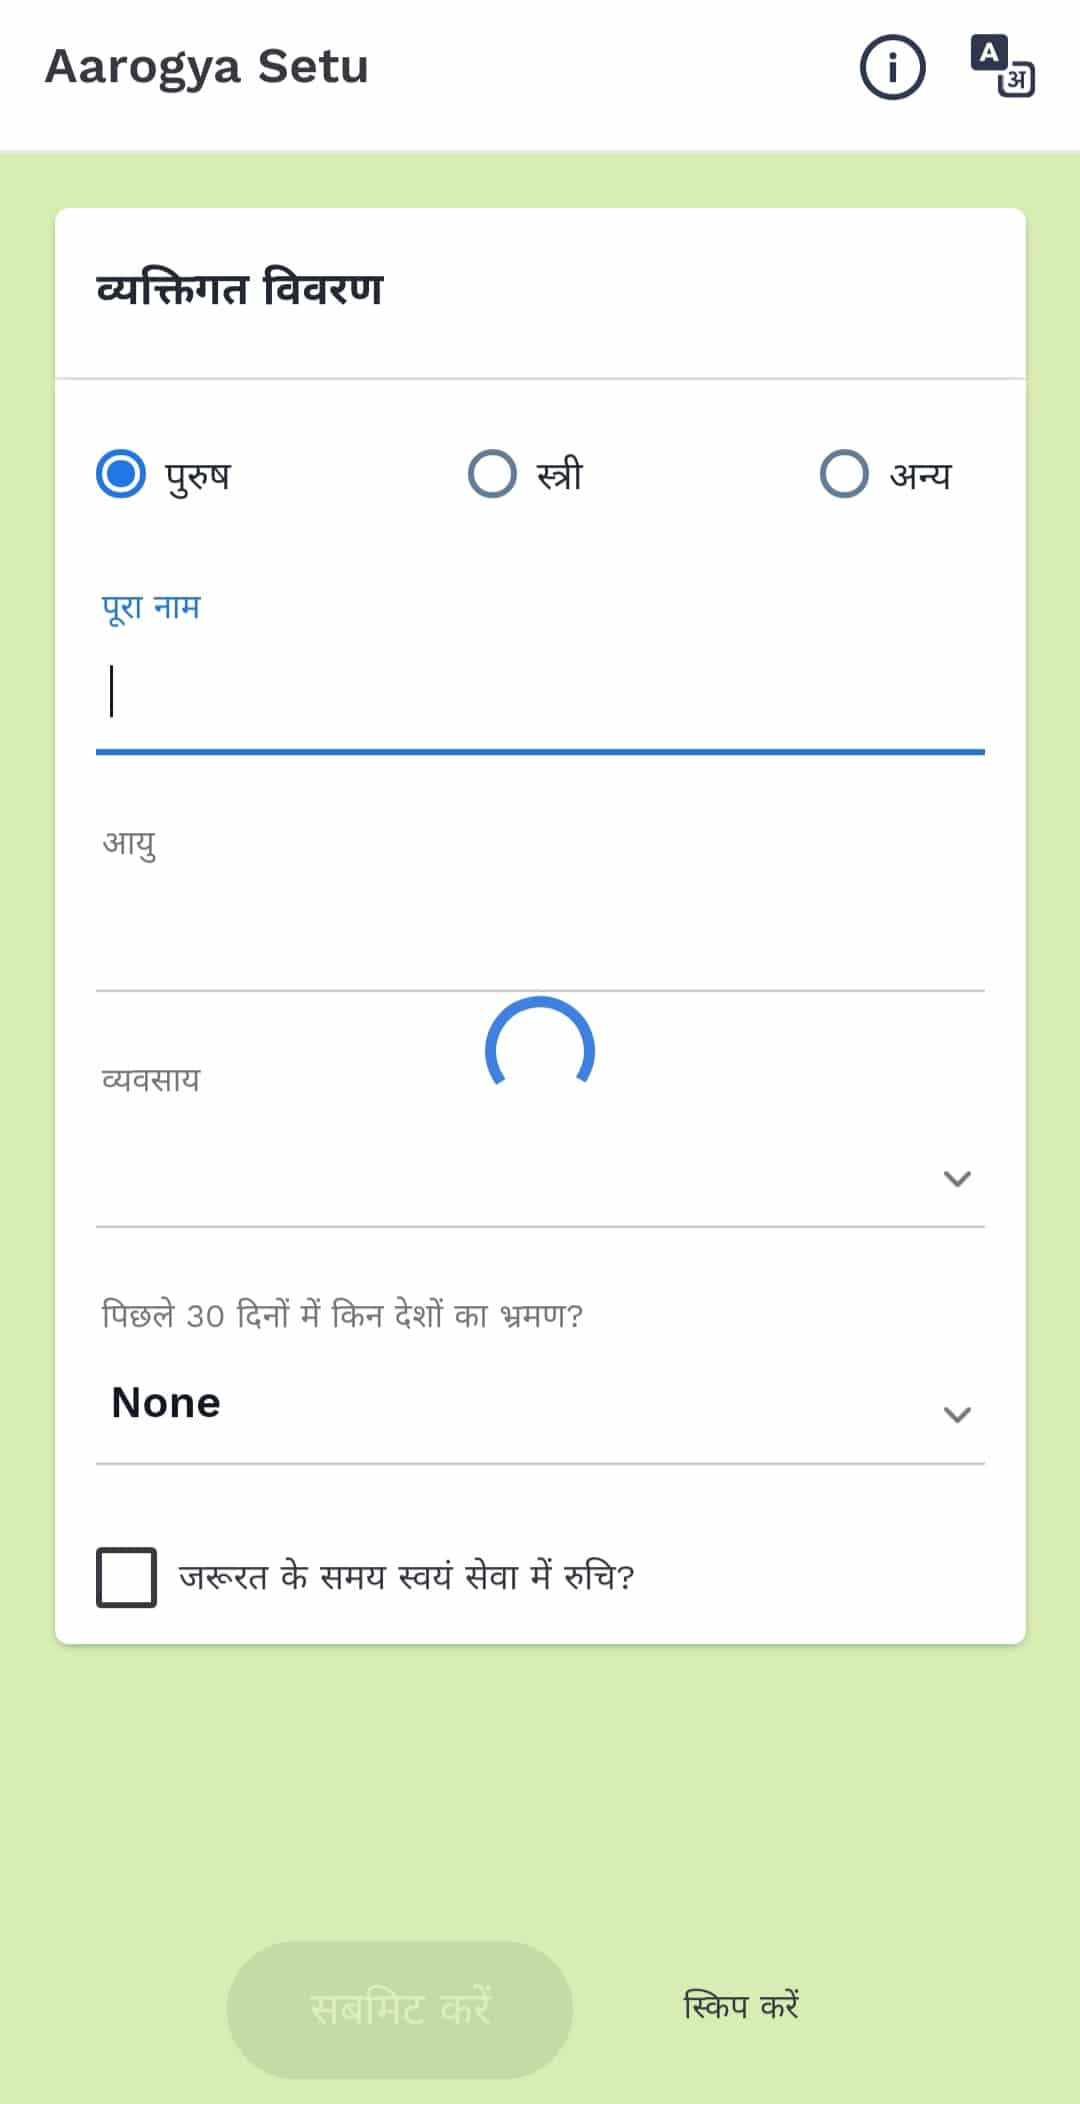 How to download and use Aarogya Setu app? Govt launches COVID-19 tracking app 'Aarogya Setu' for Android, iOS users